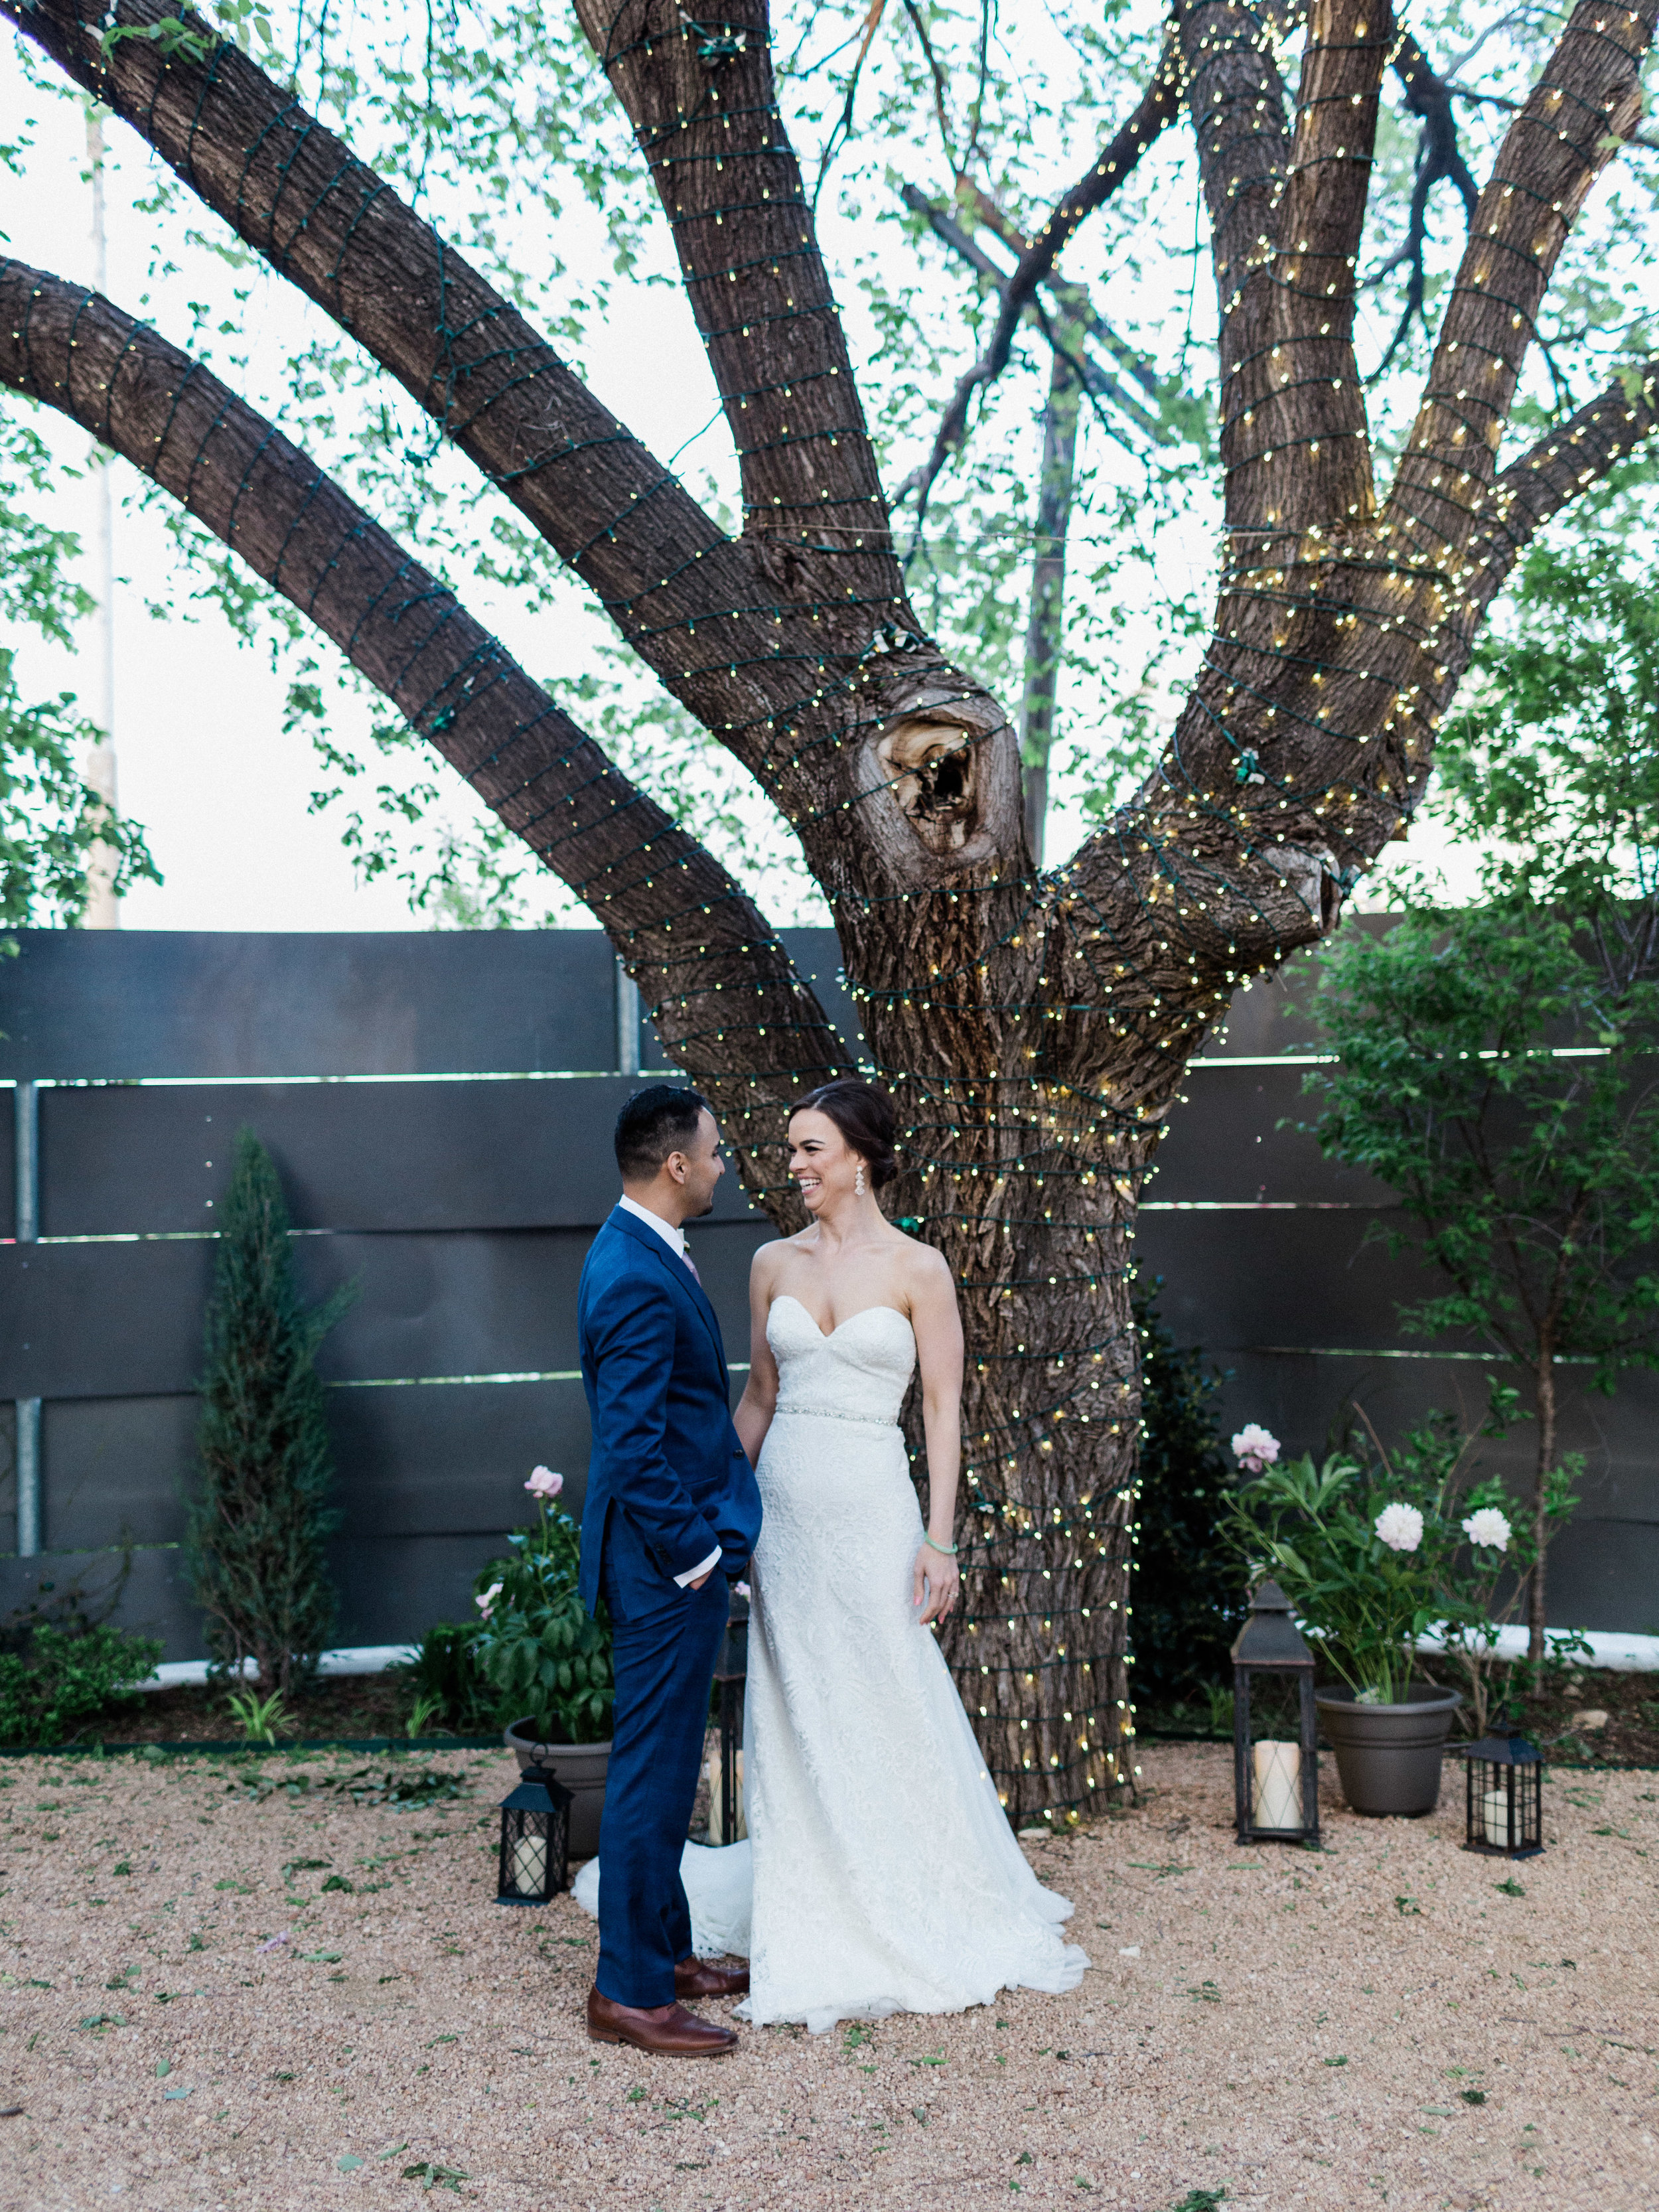 Bride and groom pictures at Outdoor Wedding in Fort Worth Texas at Artspace 111